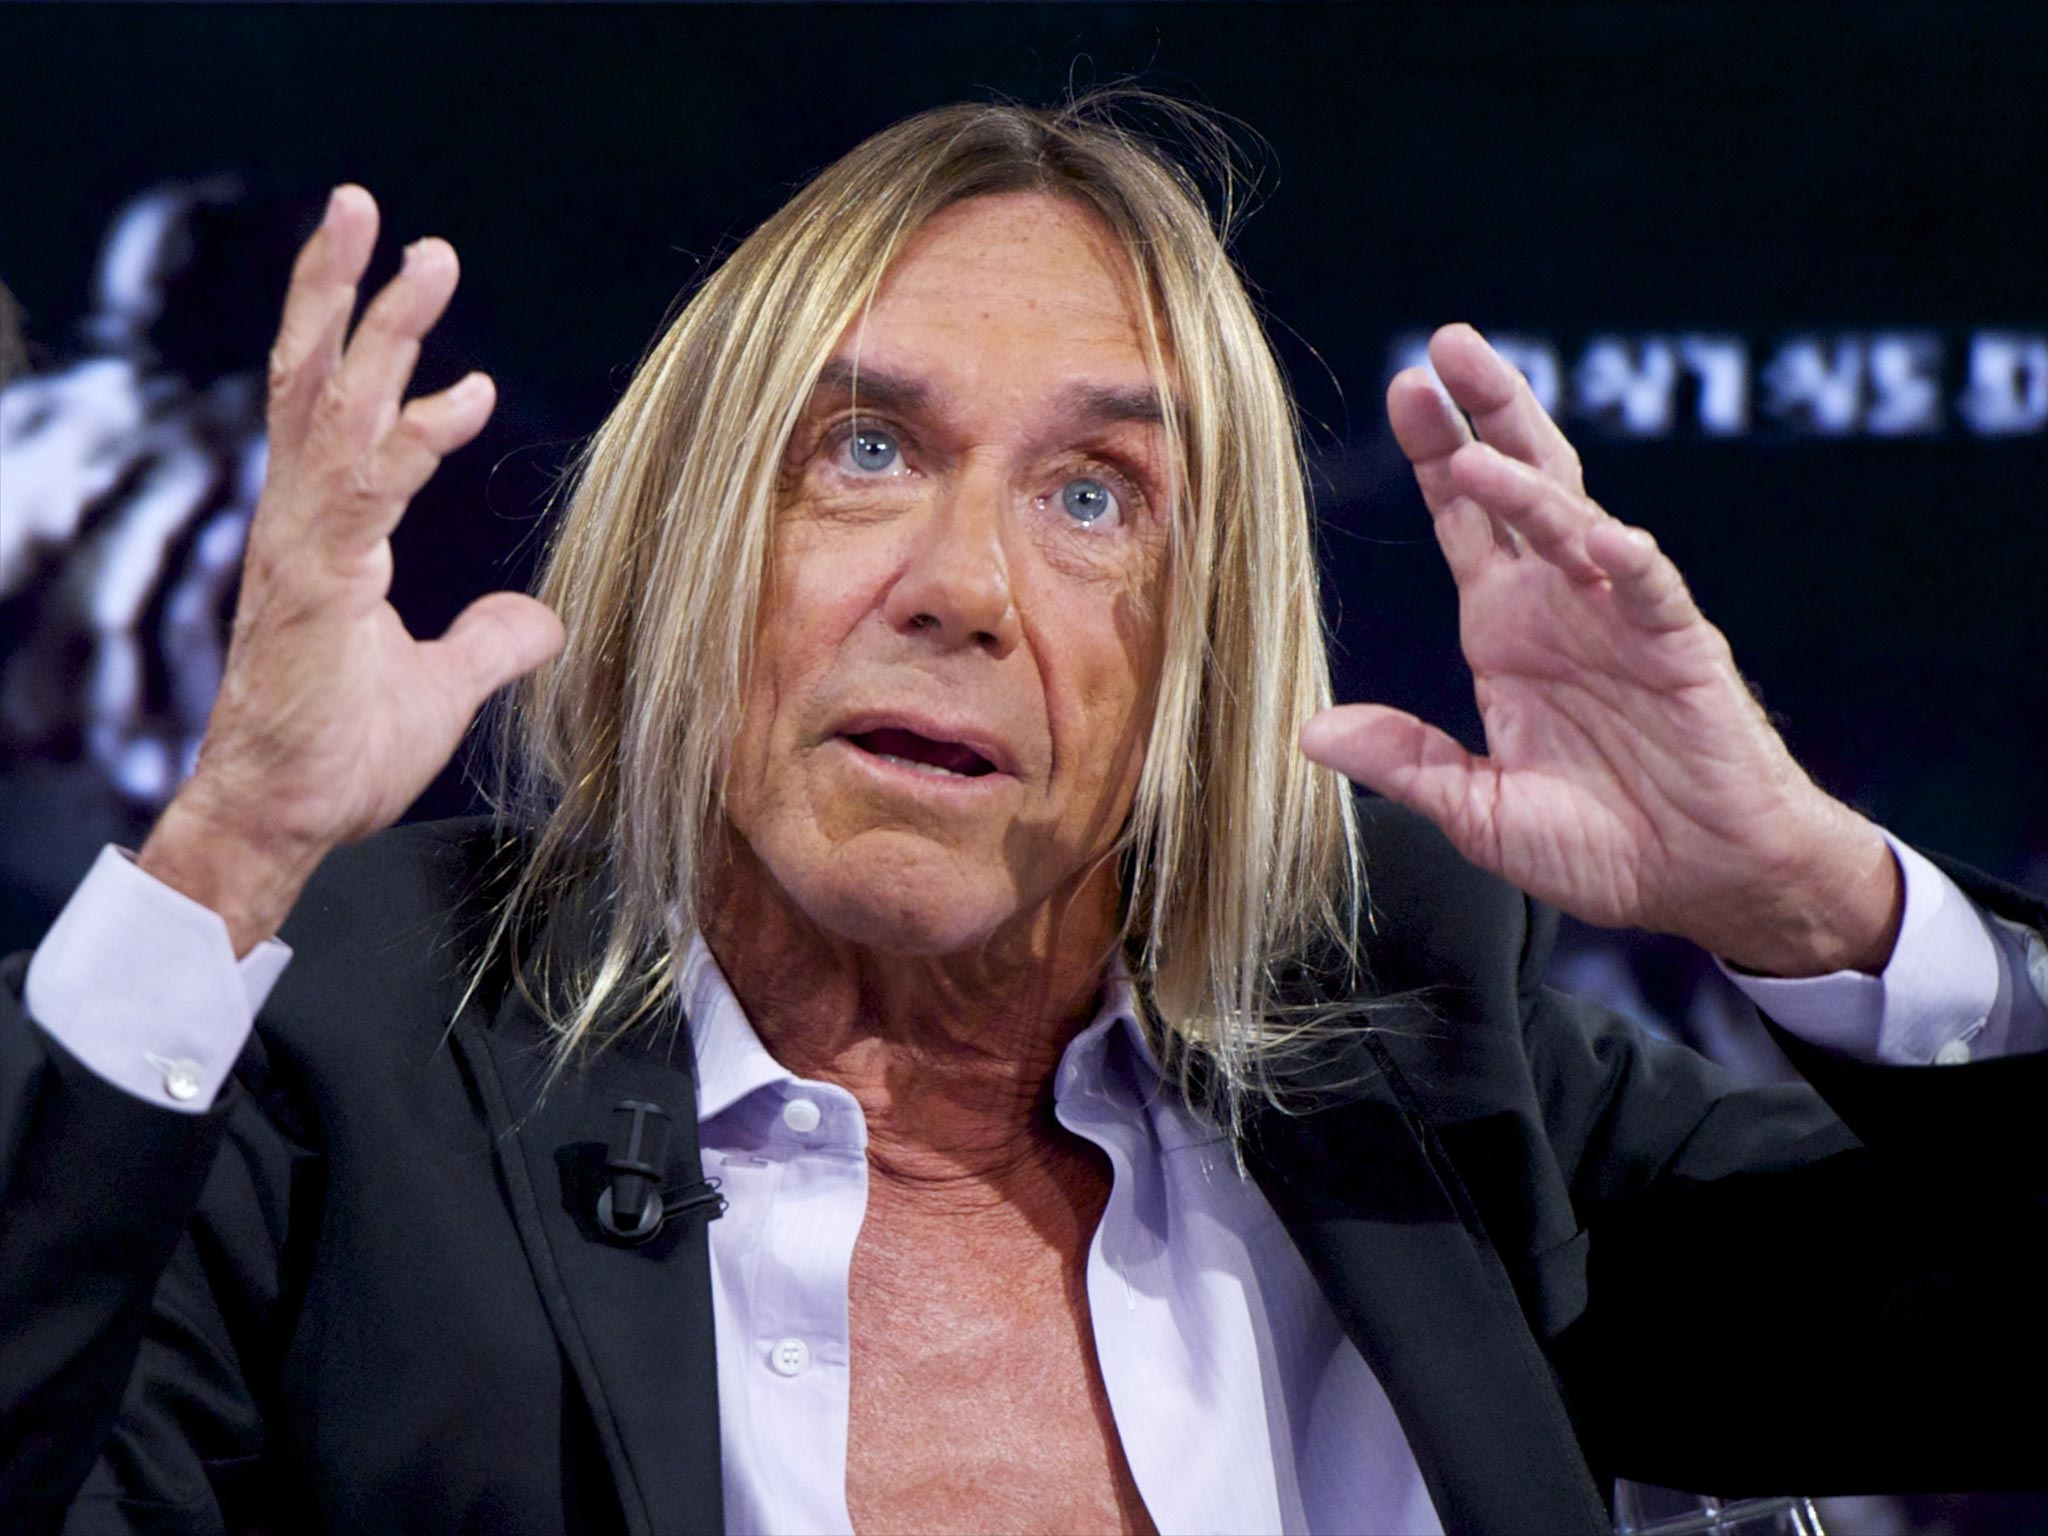 Iggy Pop with a weight of 54 kg and a feet size of N/A in favorite outfit & clothing style